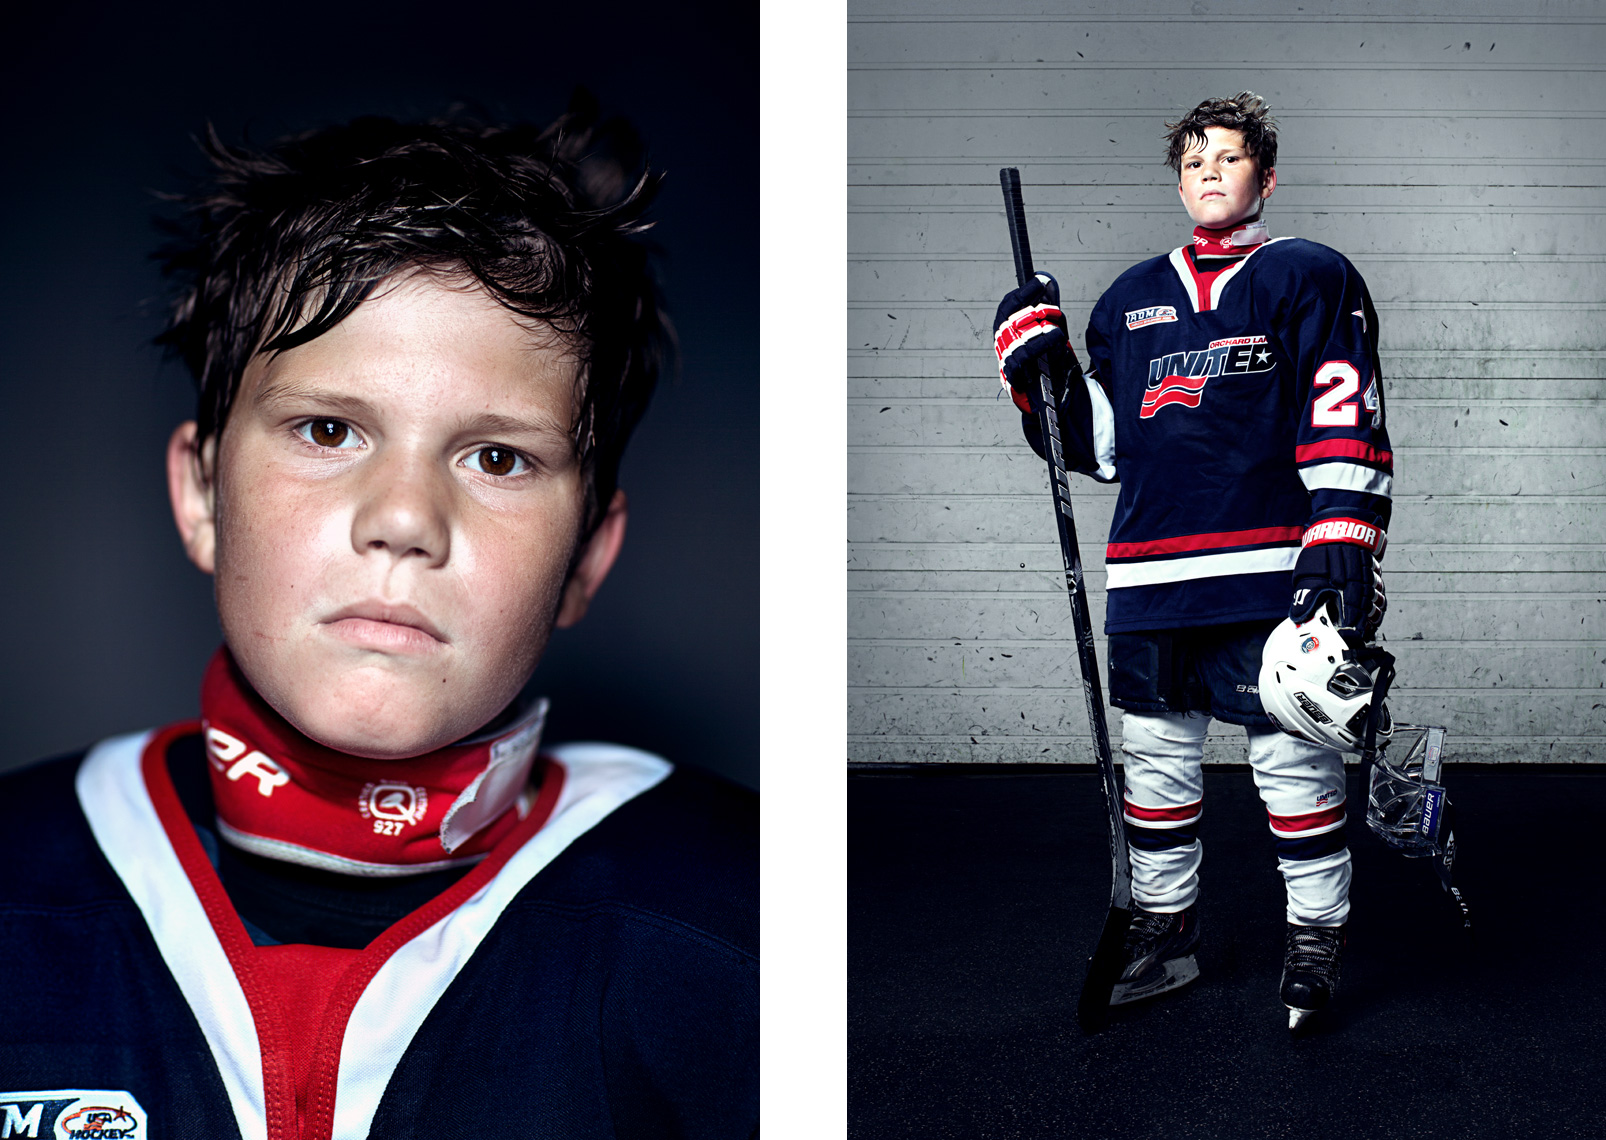 Sports Photographer STEVE BOYLE - ESPN Youth Ice Hockey